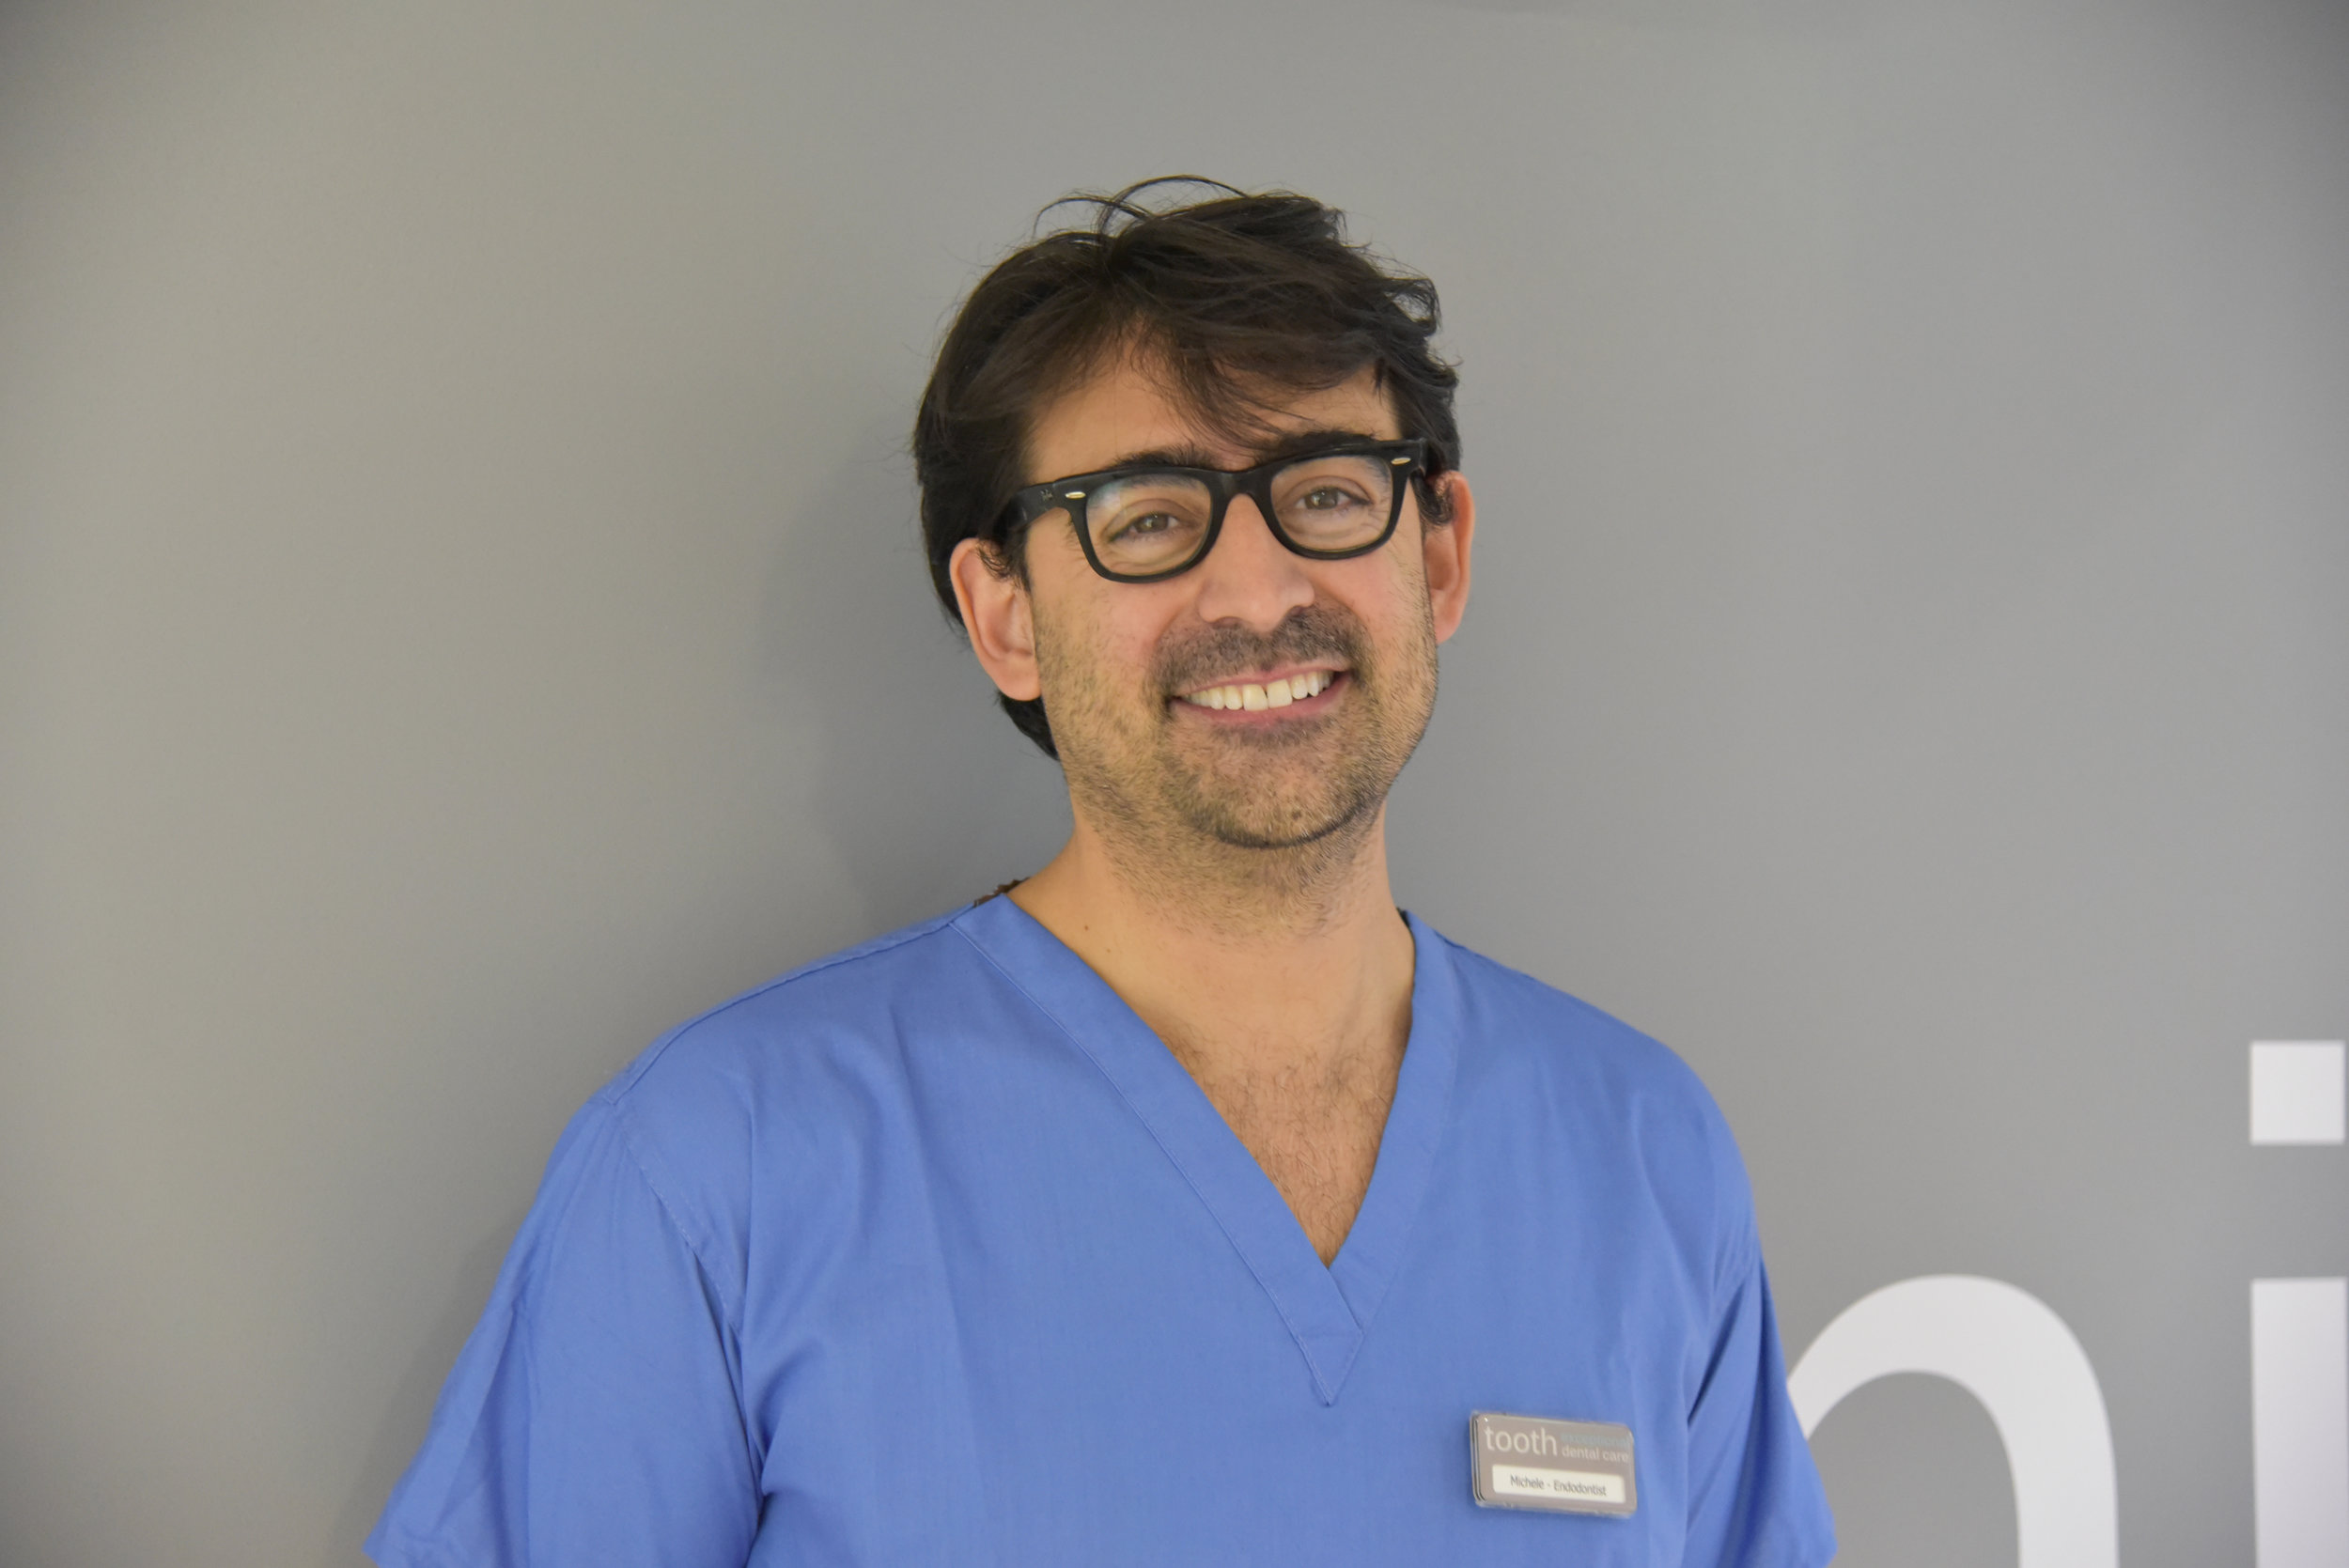 DR. MICHELE RECCHIA, DENTIST WITH A SPECIAL INTEREST IN ENDODONTICS, GDC No. 219155   BDS, University of Verona; MSc Endodontics, University College London (UCL), London;  Dr. Michele has vast experience in dentistry and endodontics (root canal treatment), having worked in dental practices in the UK, Ireland and Italy. As well as working at tooth and other leading private practices solely on endodontics, Michele also works as a Specialty Doctor in Endodontics at Eastman (UCL) Hospital. He is a member of the British Endodontic Society, the Italian Endodontic Society and the European Society of Endodontology. He is expert in microscope dentistry, great with the patients and clinically excellent.